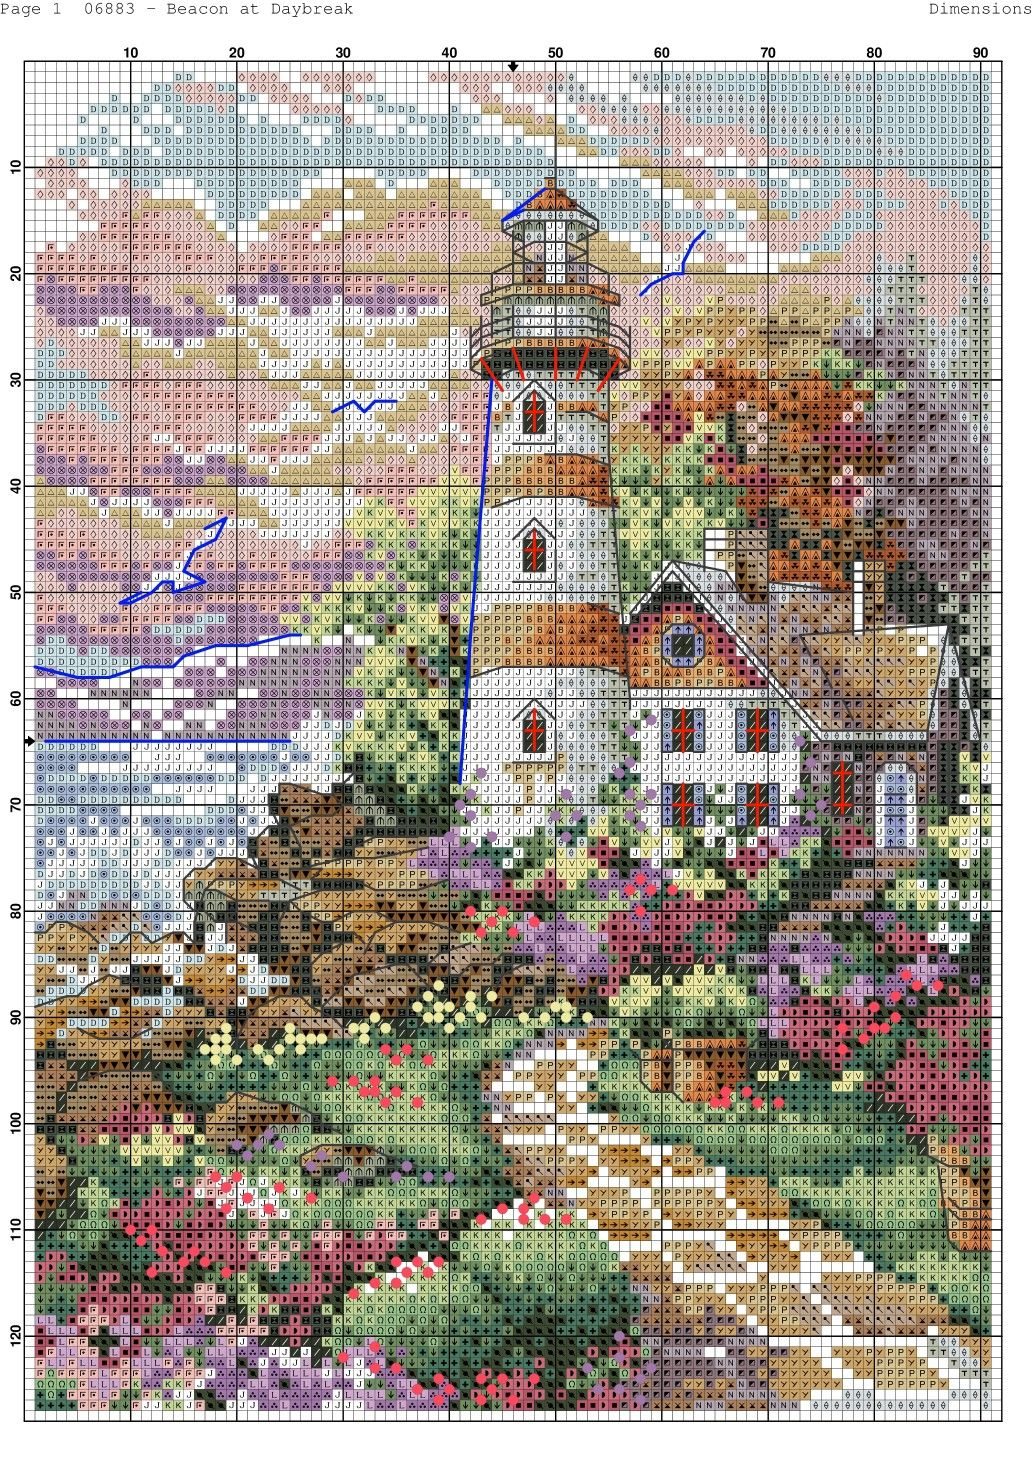 Lot of 2 Counted Cross Stitch Kits BEACON AT DAYBREAK~BEACON AT ROCKY POINT